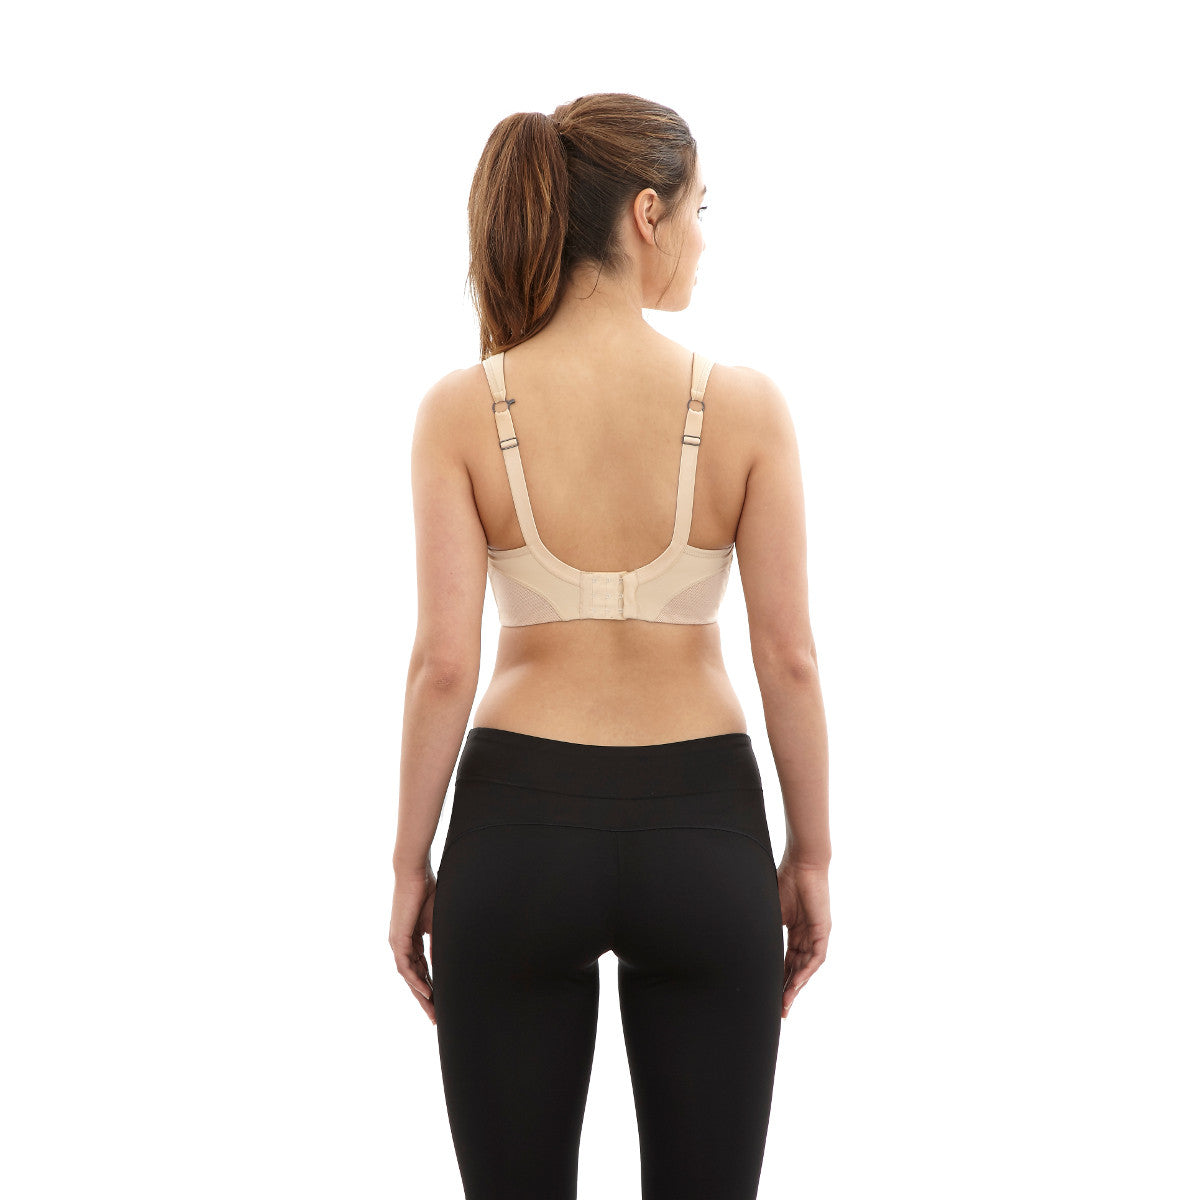 Panache Latte Nude Non-Wired Sports Exercise Bra